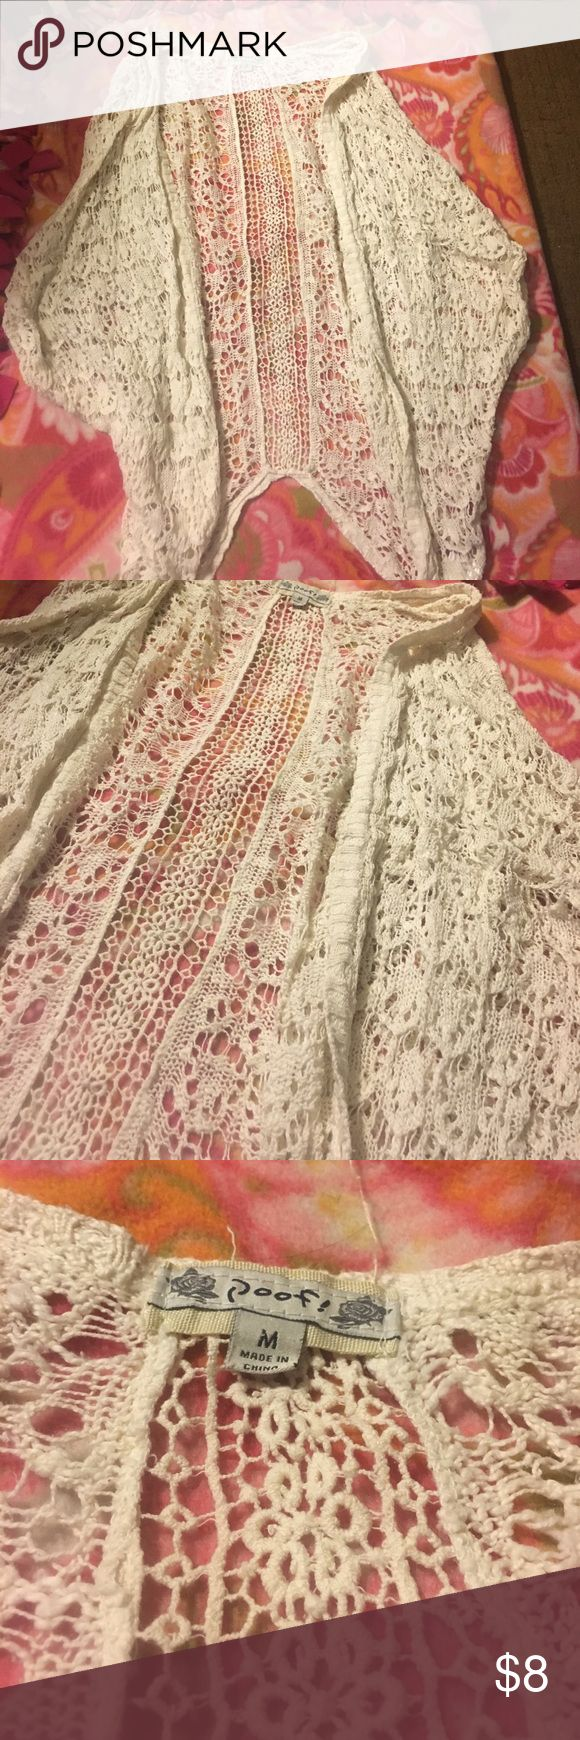 Cardigan hole in back can't really tell. Very beautiful short sleeve cardigan. Bought from Charlotte Russe ❤️ FREE MAKE UP OR MAKE UP BAG OR COUPON WITH PURCHASE ❤️ -just add to bundle Charlotte Russe Sweaters Cardigans